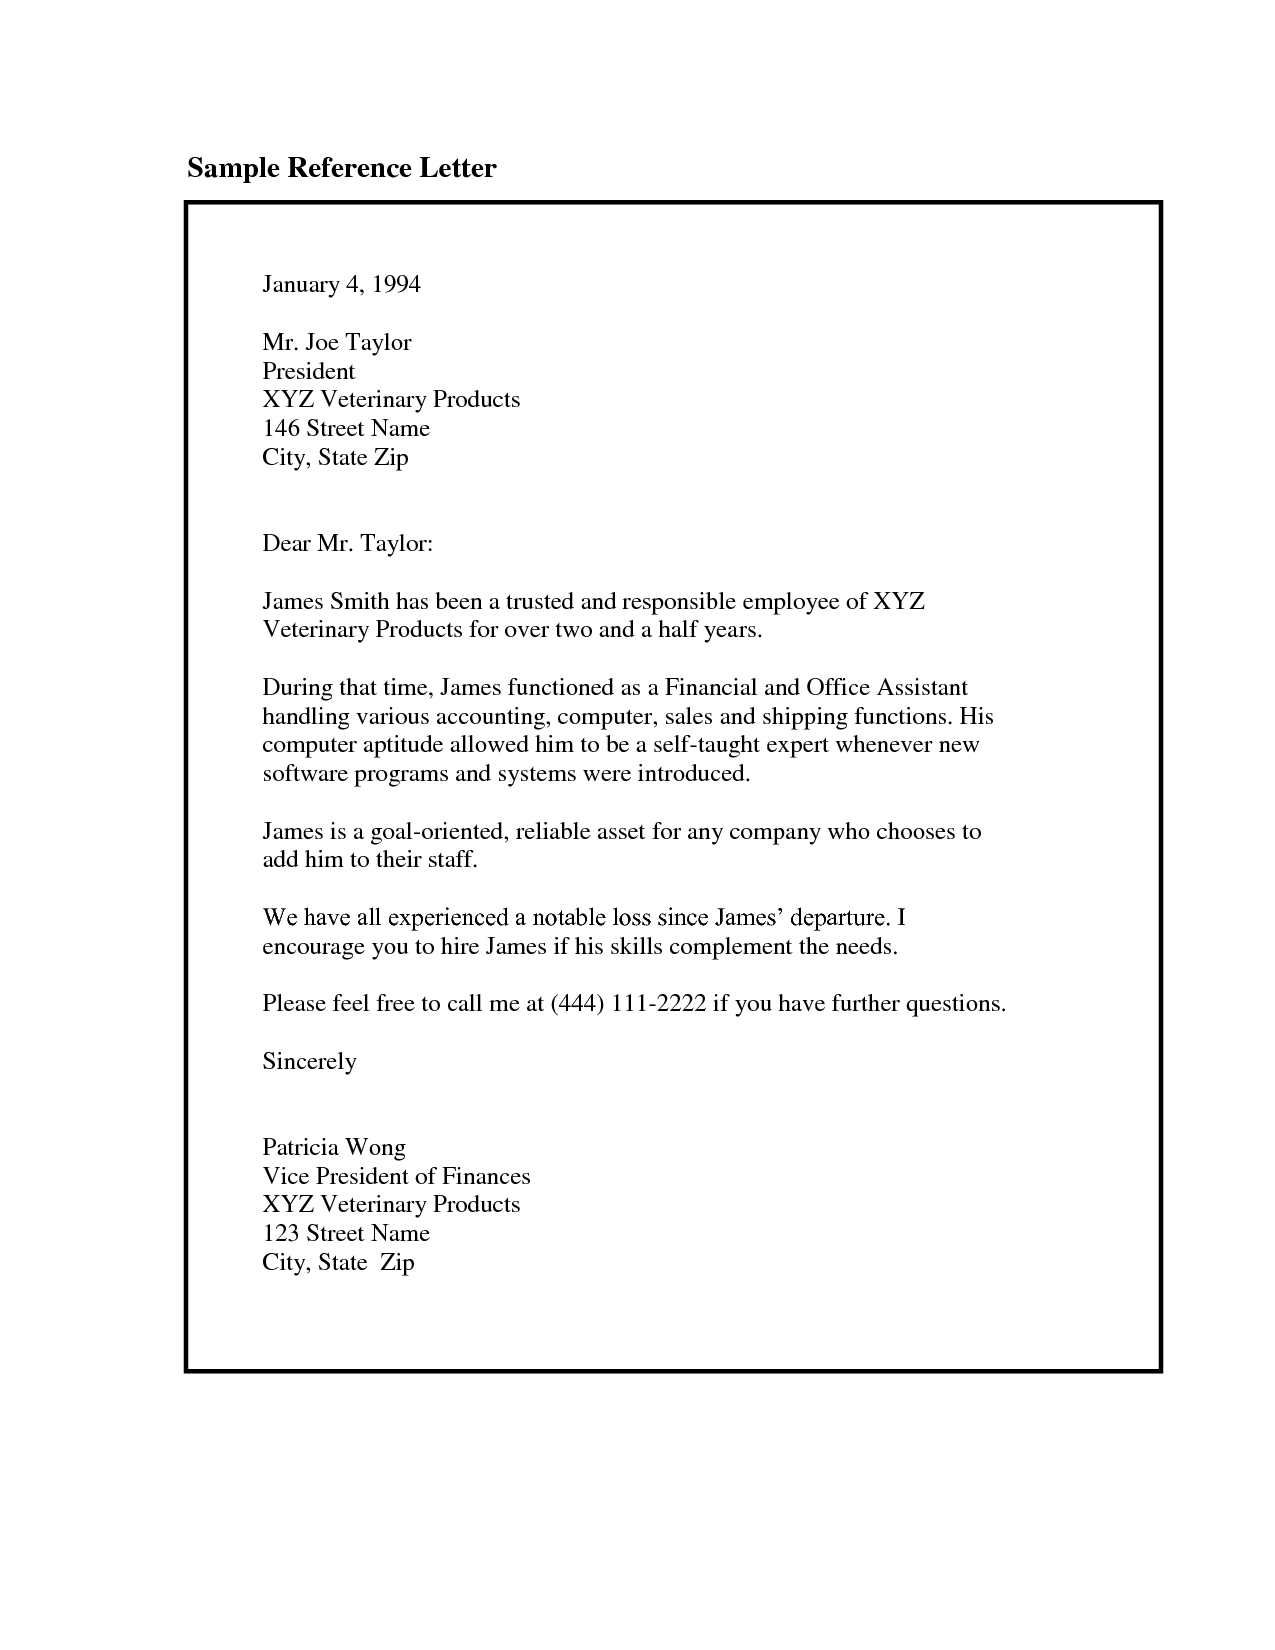 Template reference letter for employee google search reference template reference letter for employee google search expocarfo Choice Image